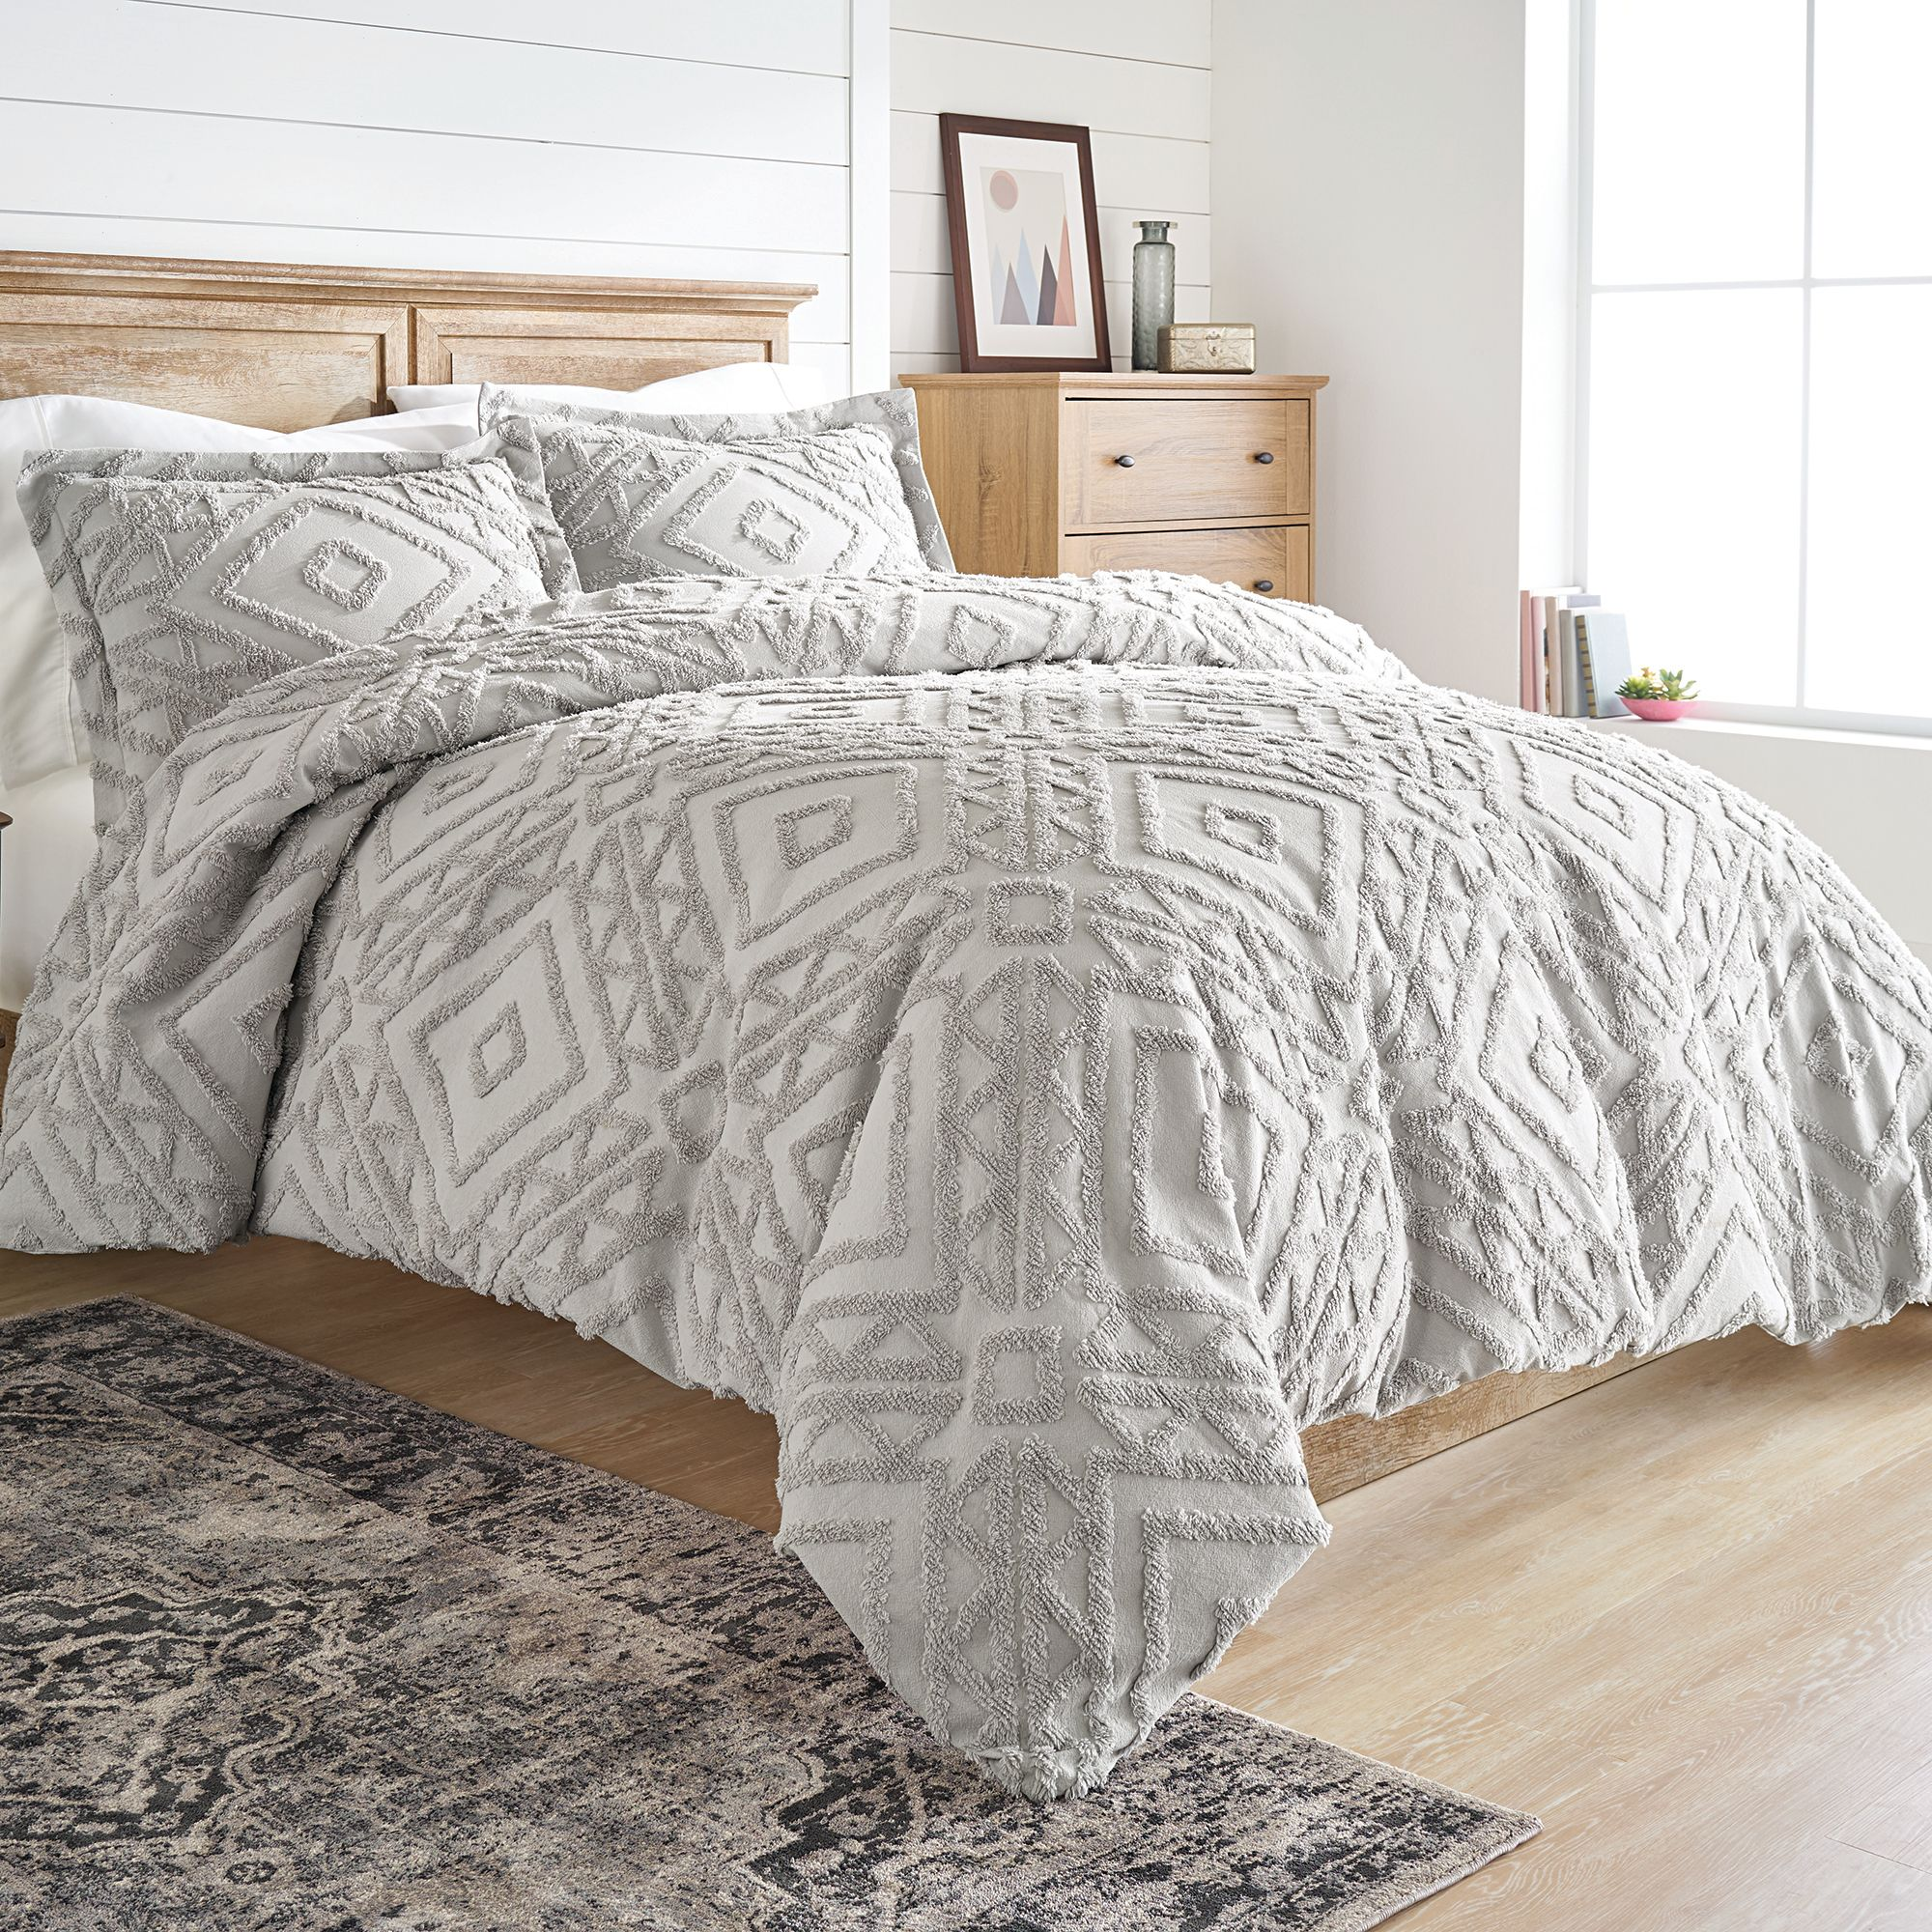 Duvet And Cover Better Homes And Gardens 3 Piece Chenille Duvet Cover Set